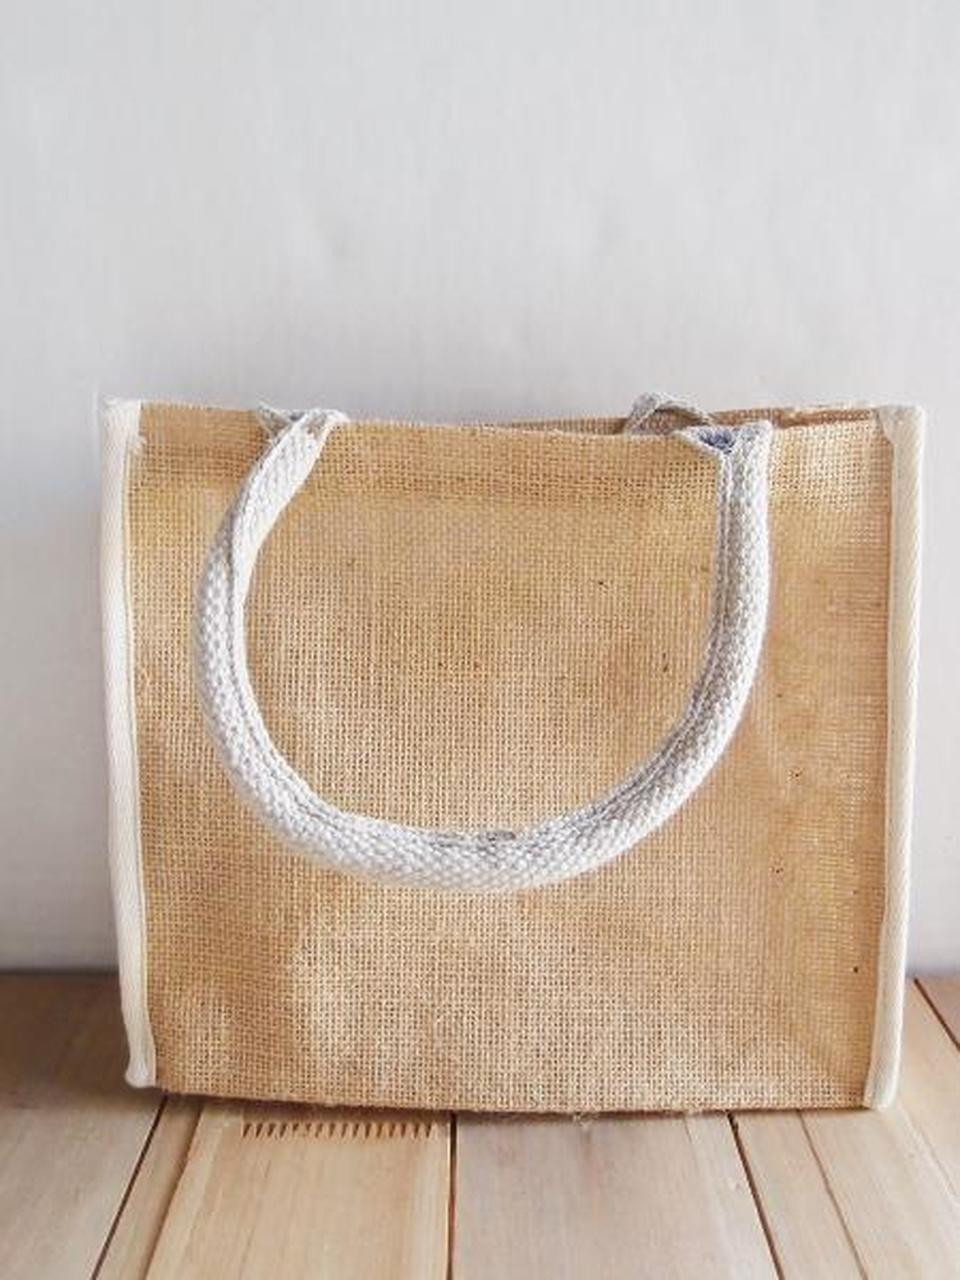 """Wholesale Jute Tote Bags, Jute Tote Bag with White Cotton Trim 10 1/4"""" W x 9"""" H x 3"""" Gusset, B874-71 